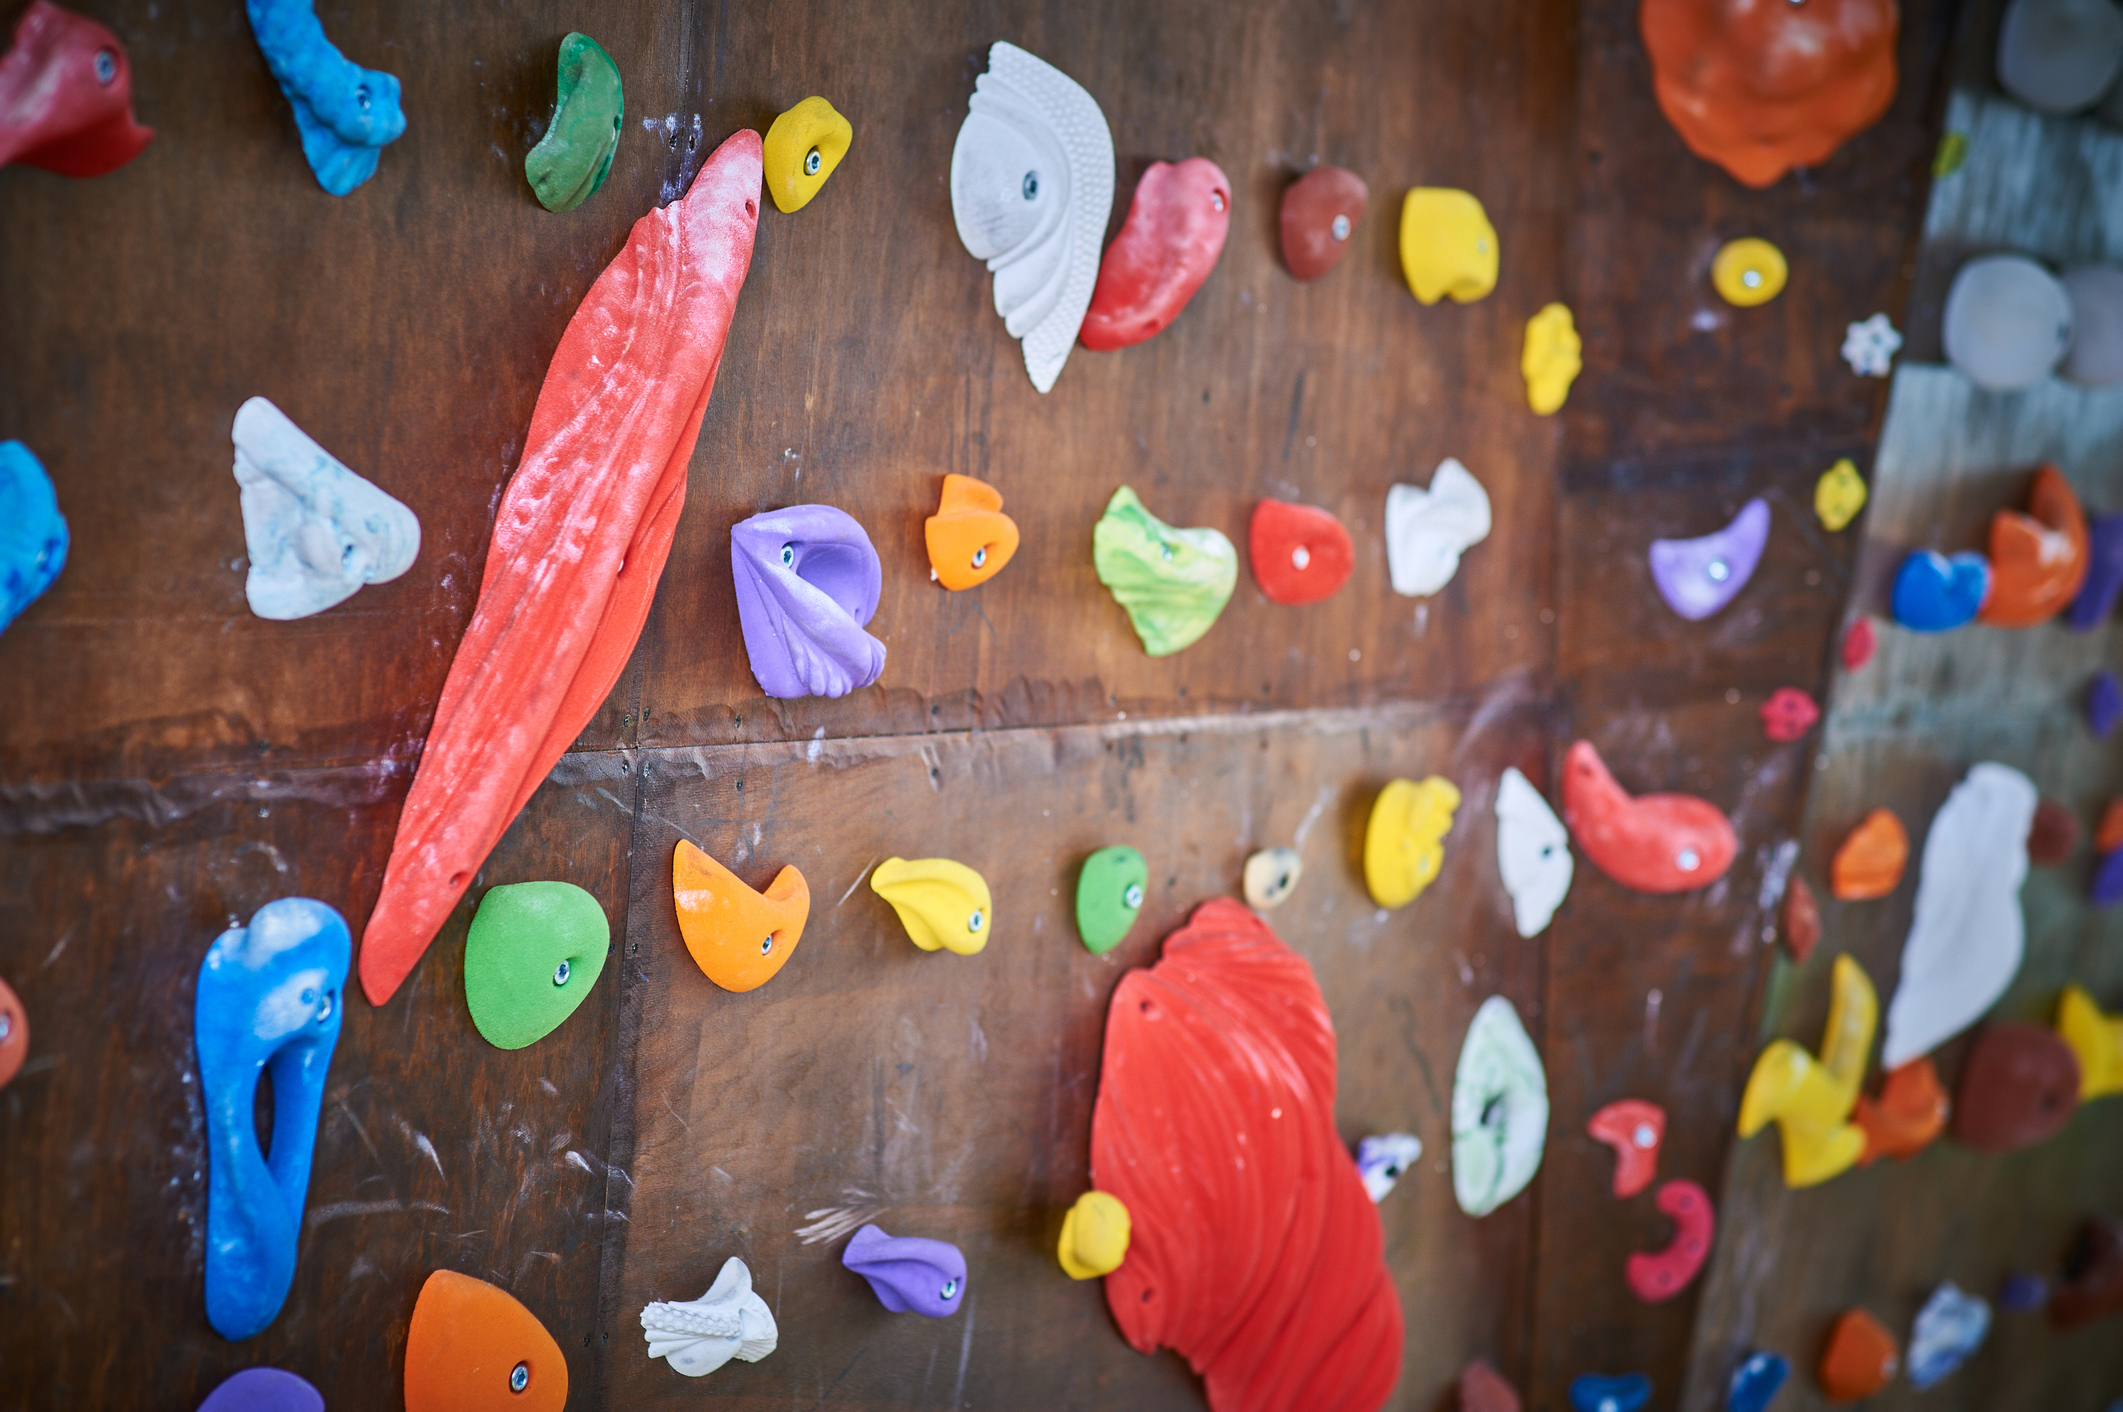 Wooden wall with multicolored climbing holds in gym